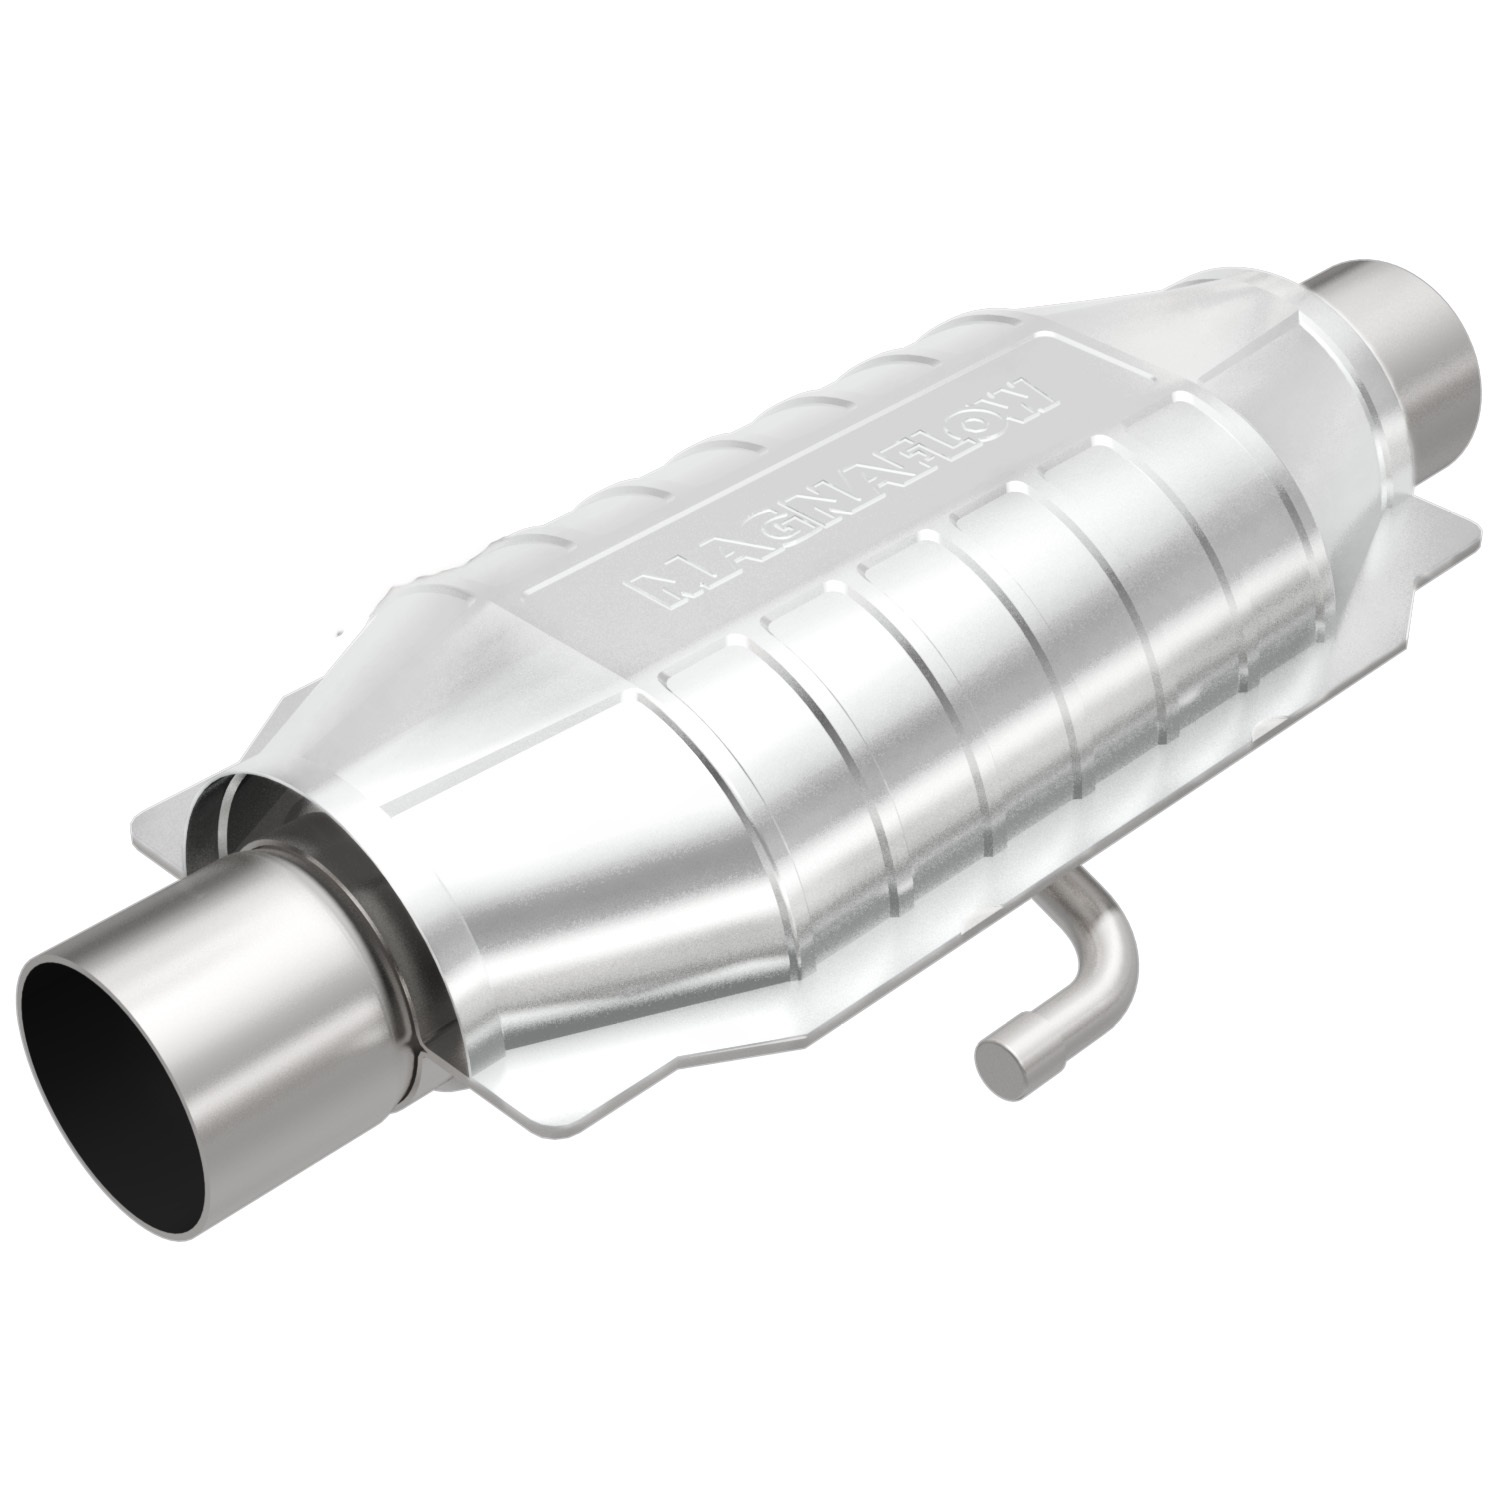 MagnaFlow Exhaust Products Catalytic Converter (38015)